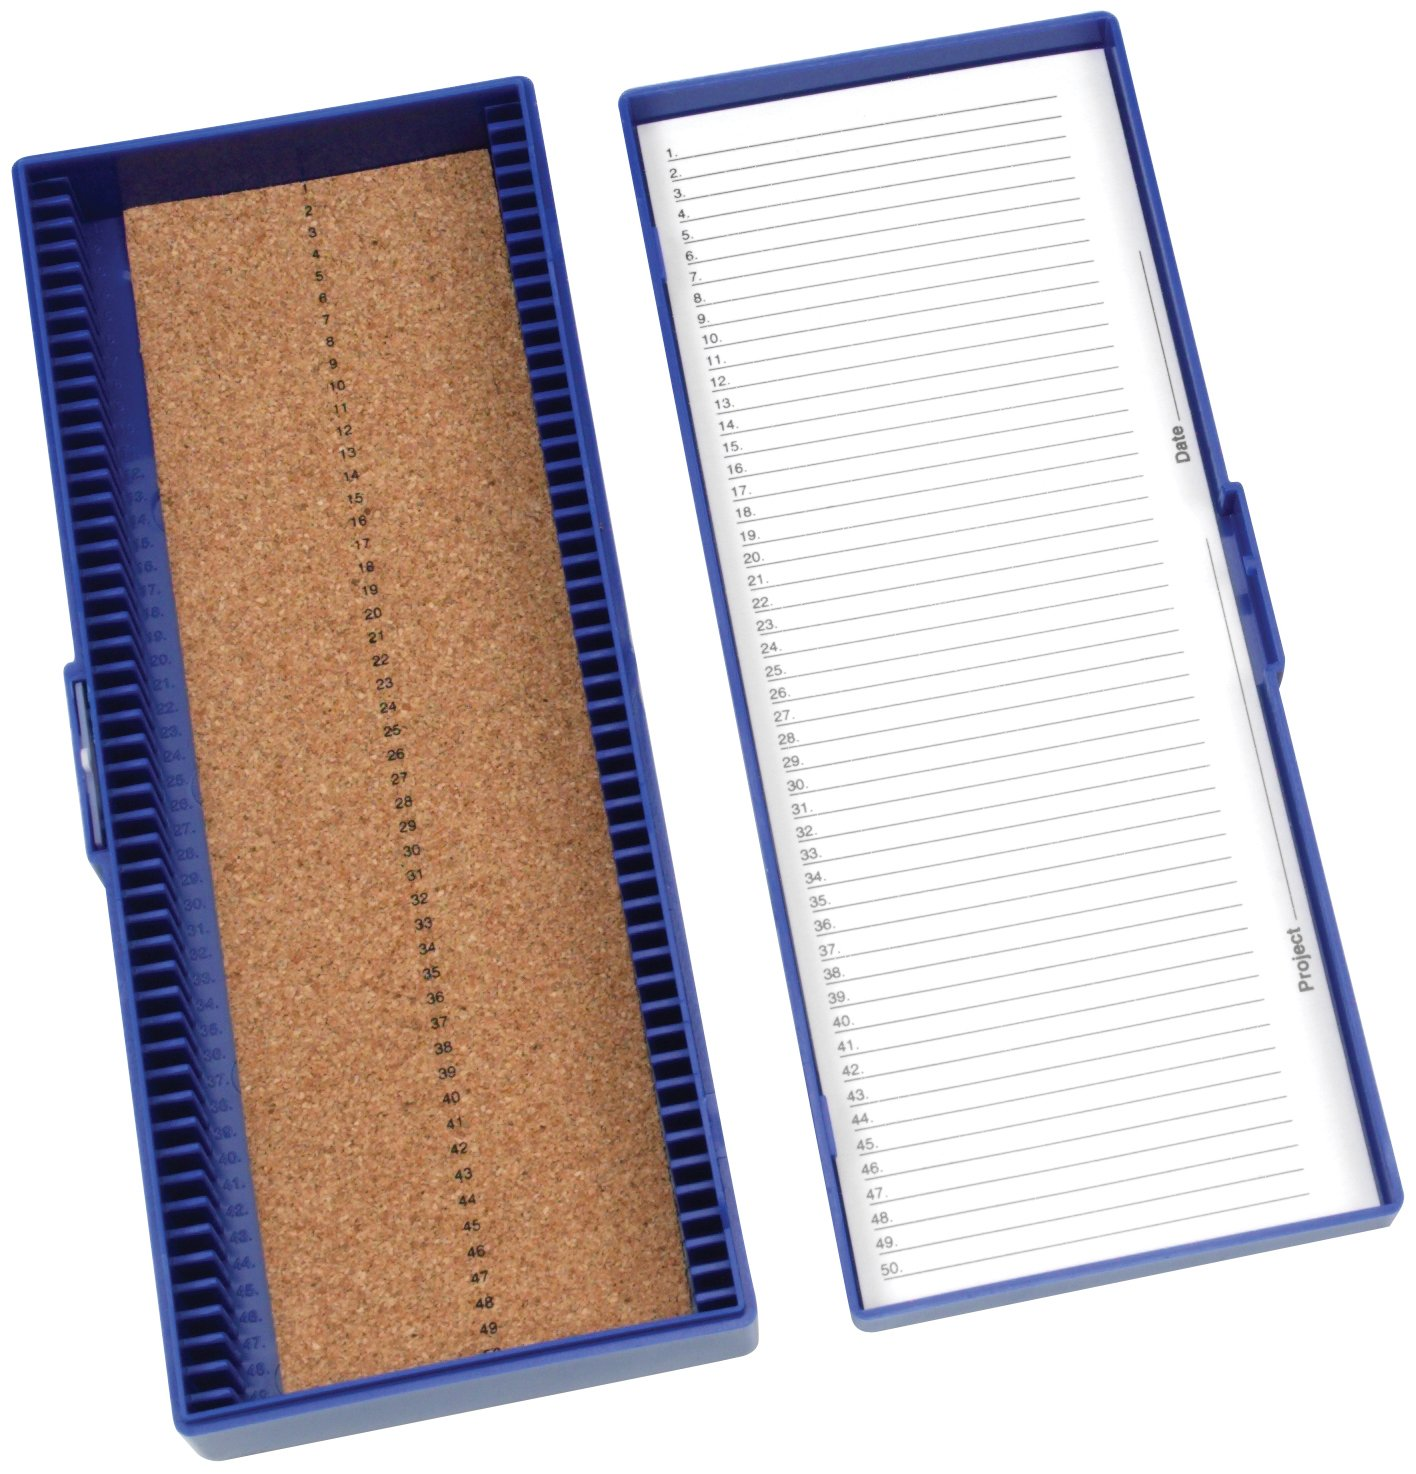 Heathrow Scientific HD15996A Blue Cork Lined 50 Place Microscope Slide Box, 8.3 Length x 3.38 Width x 1.25 Height HS15996A